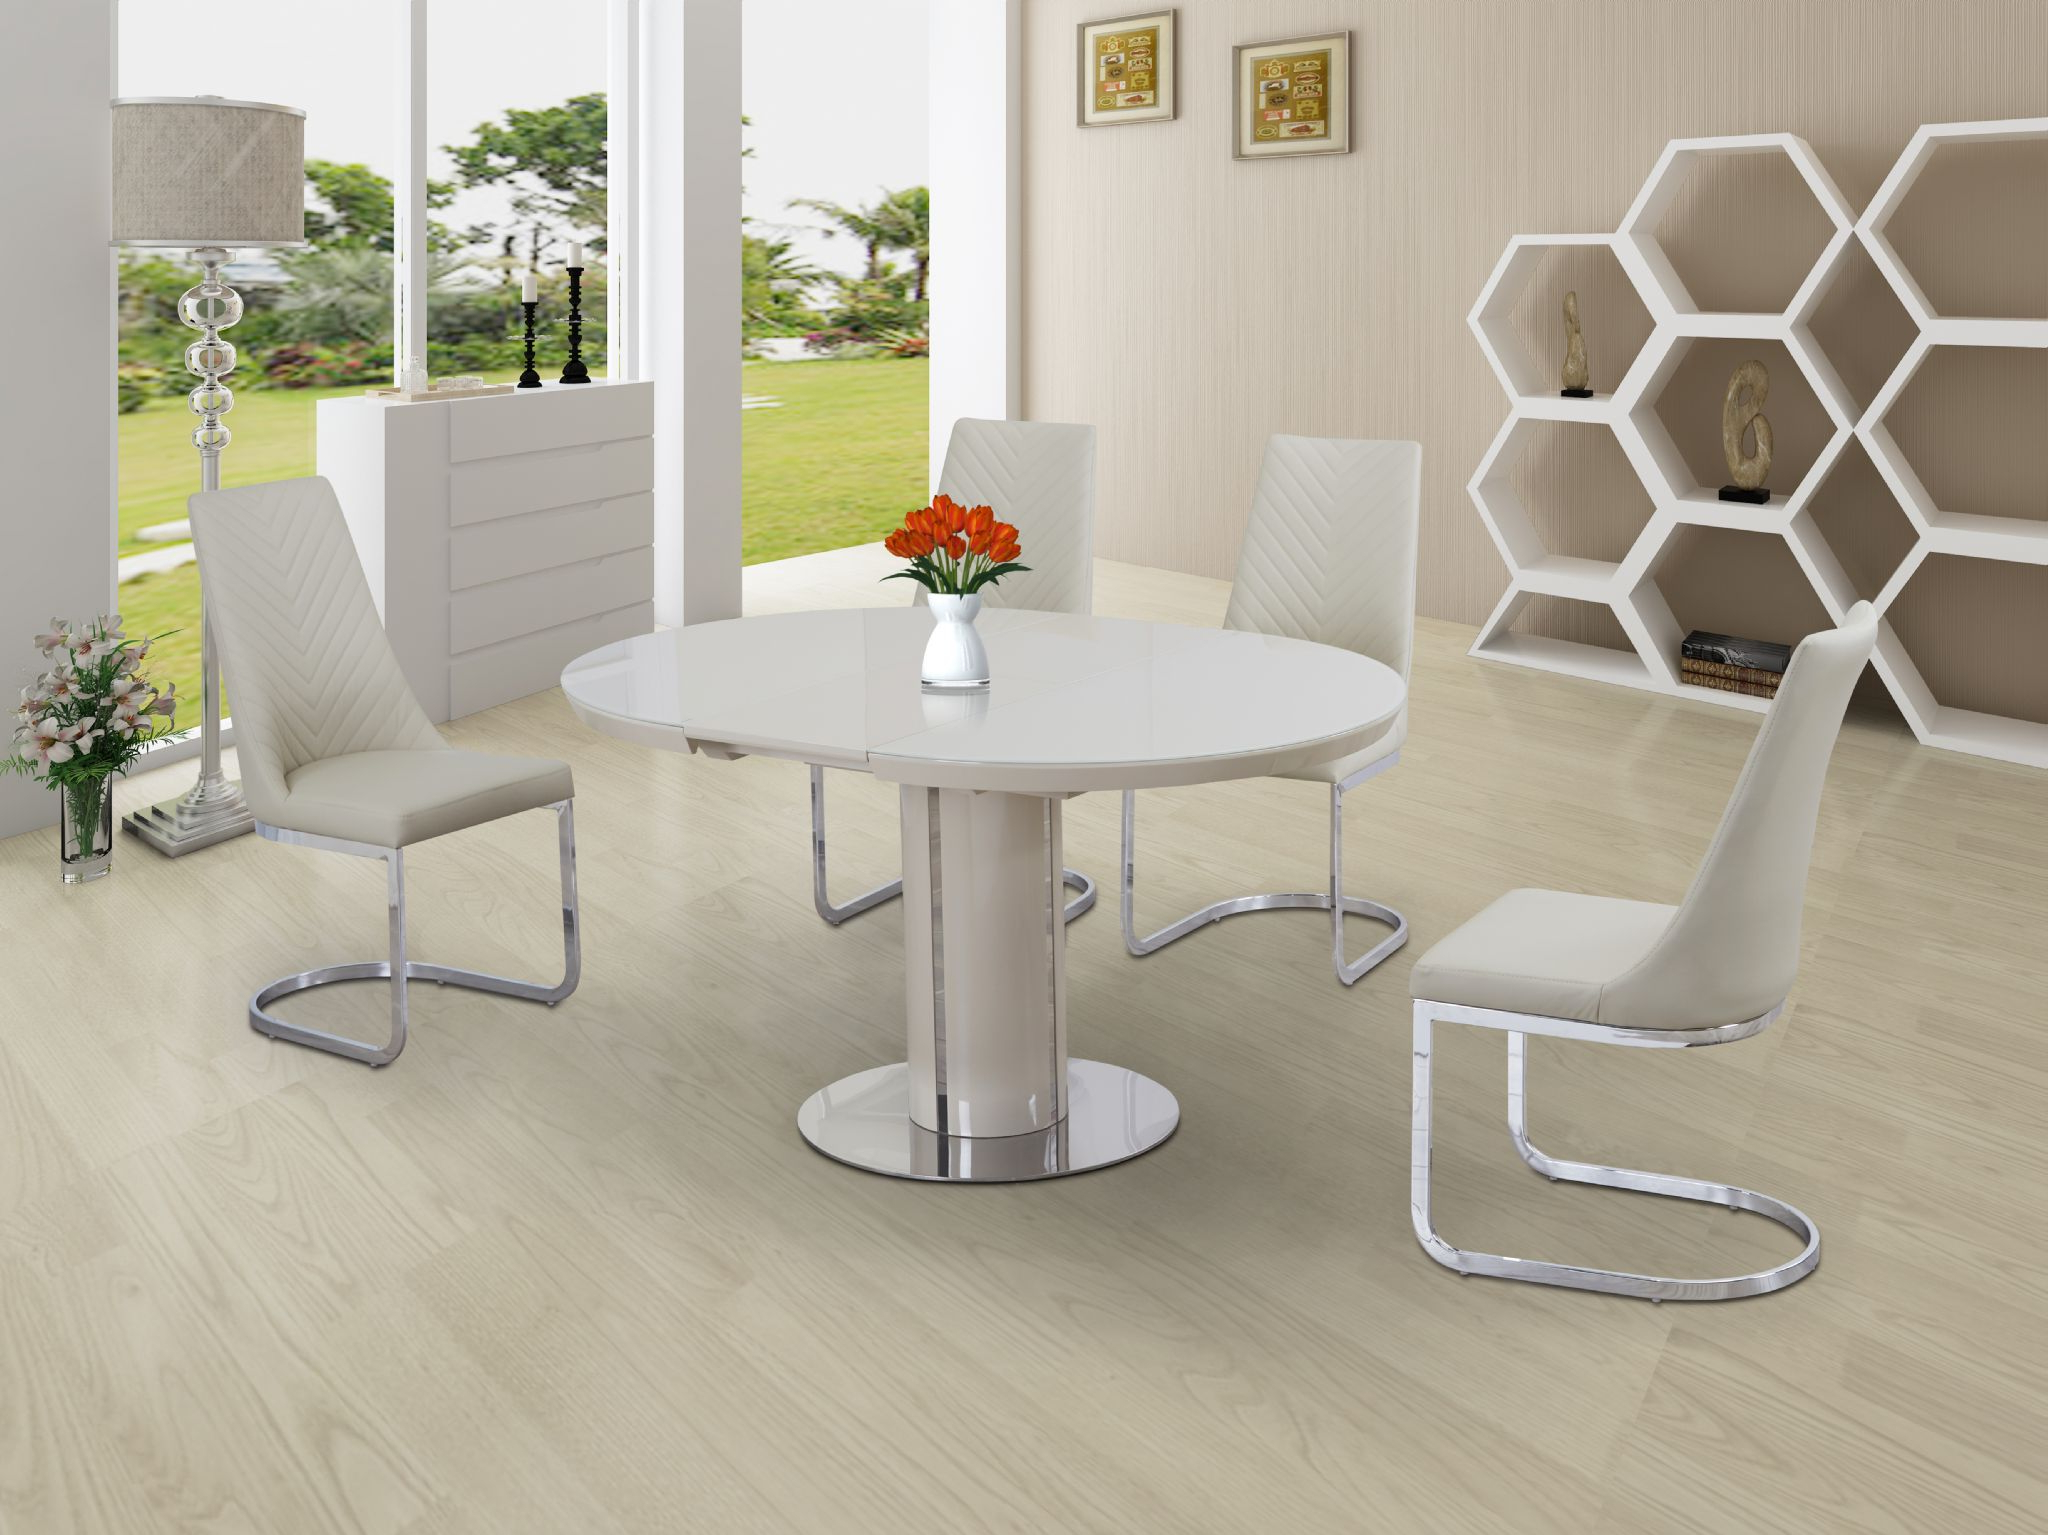 Most Recently Released Eclipse Round / Oval Gloss & Glass Extending 110 To 145 Cm Dining Table –  Cream Inside Eclipse Dining Tables (Gallery 12 of 30)